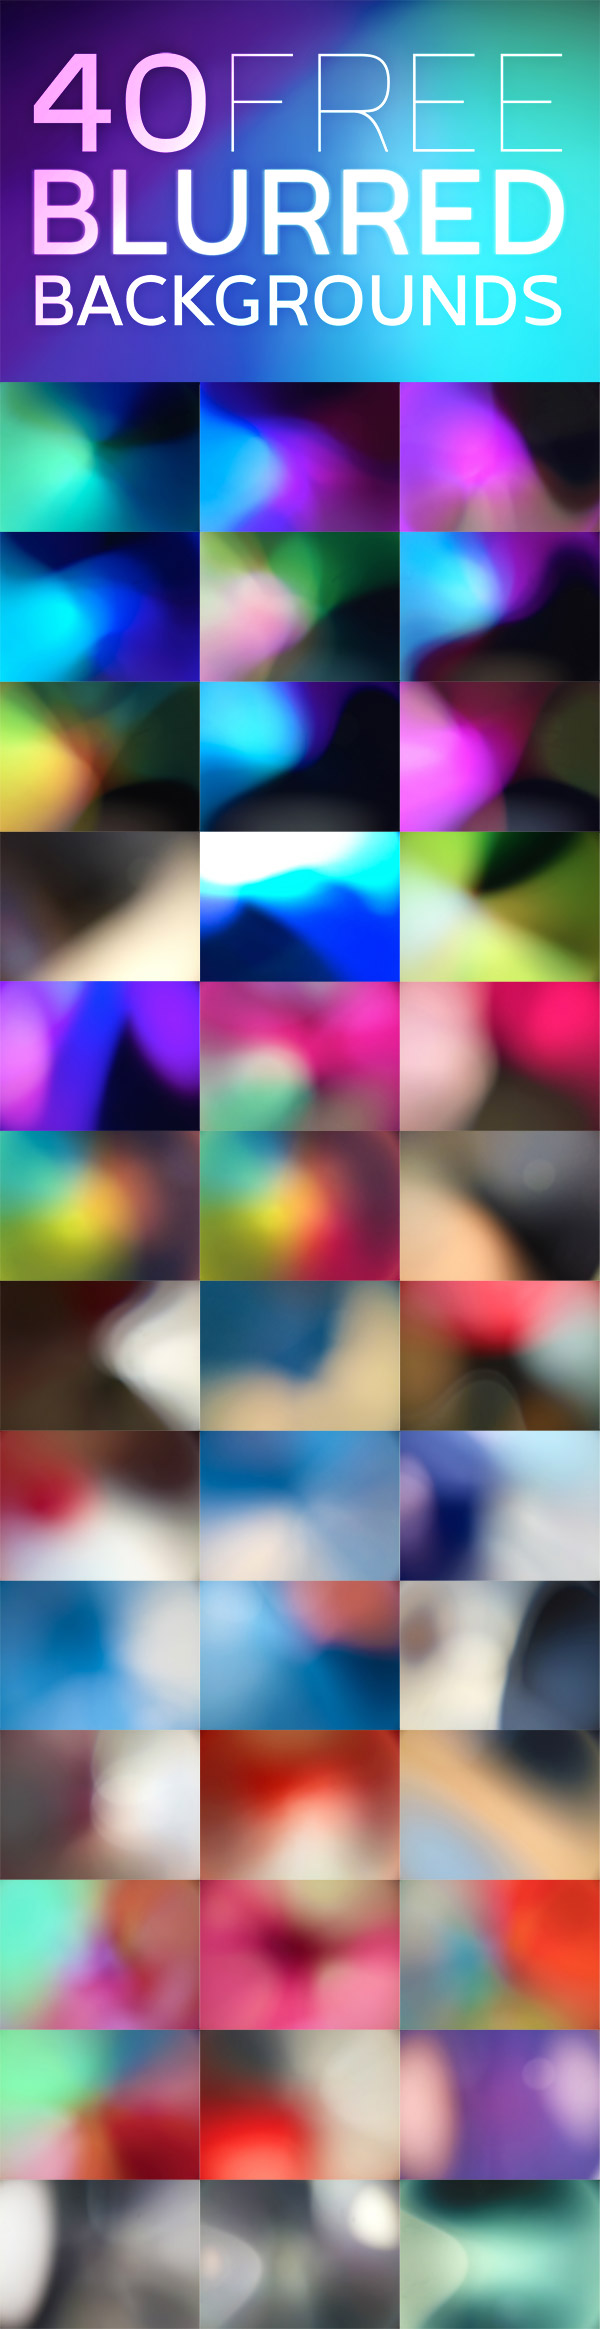 40 Free High Resolution Vibrant Blurred Backgrounds